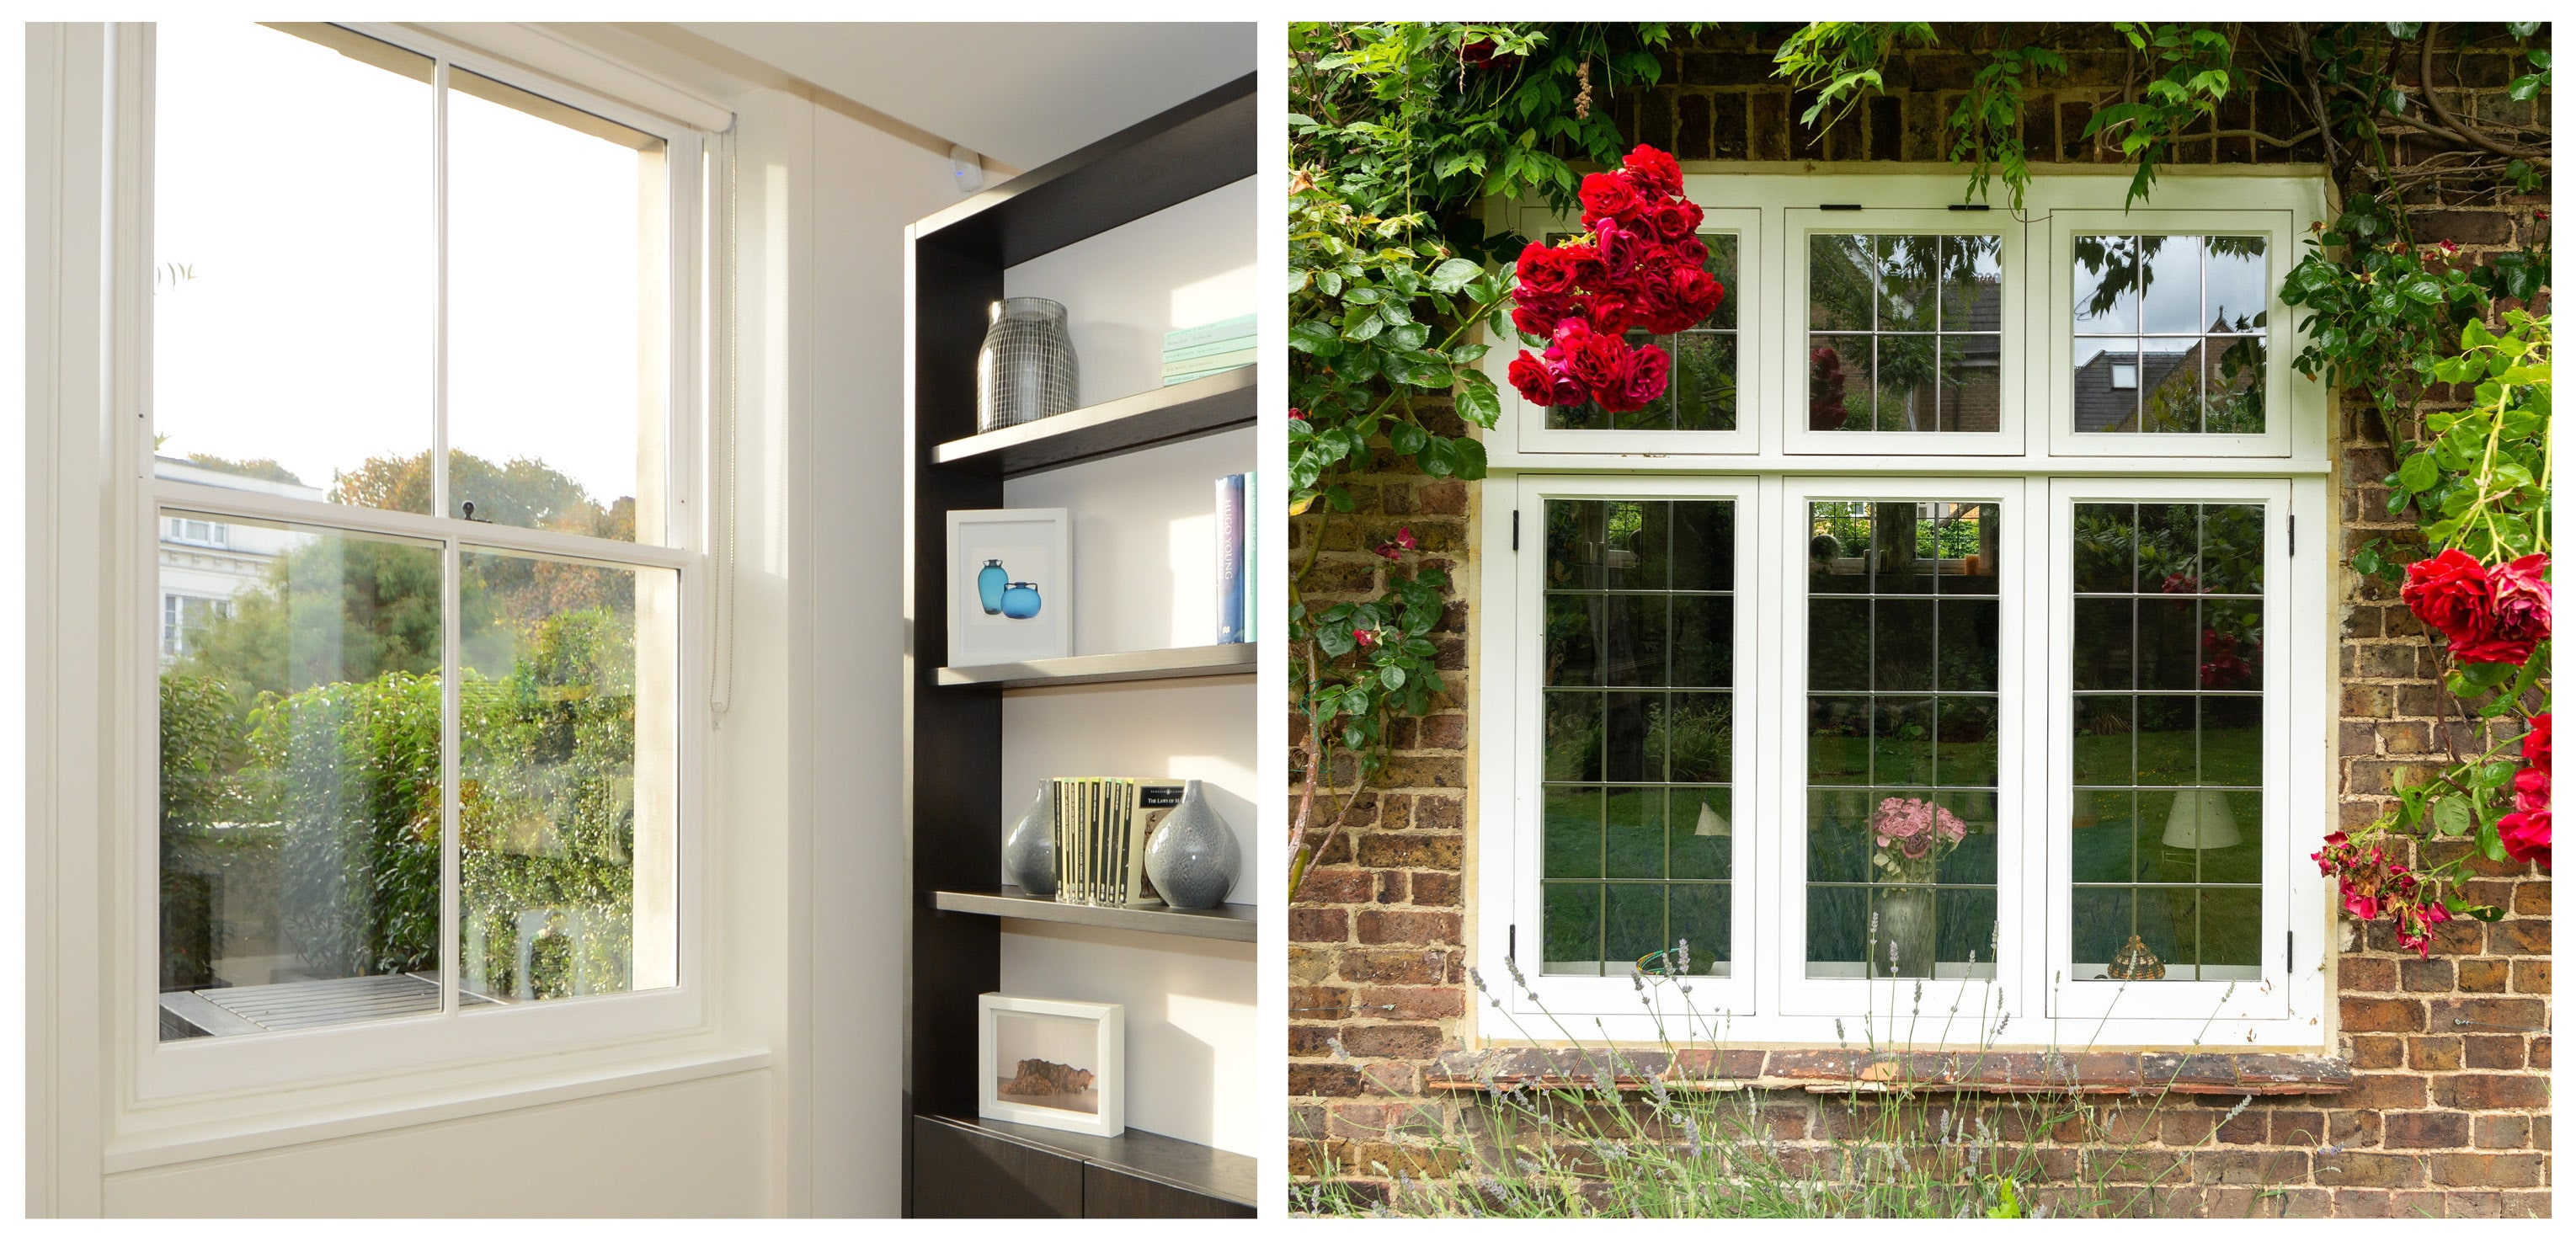 Sash & casement windows